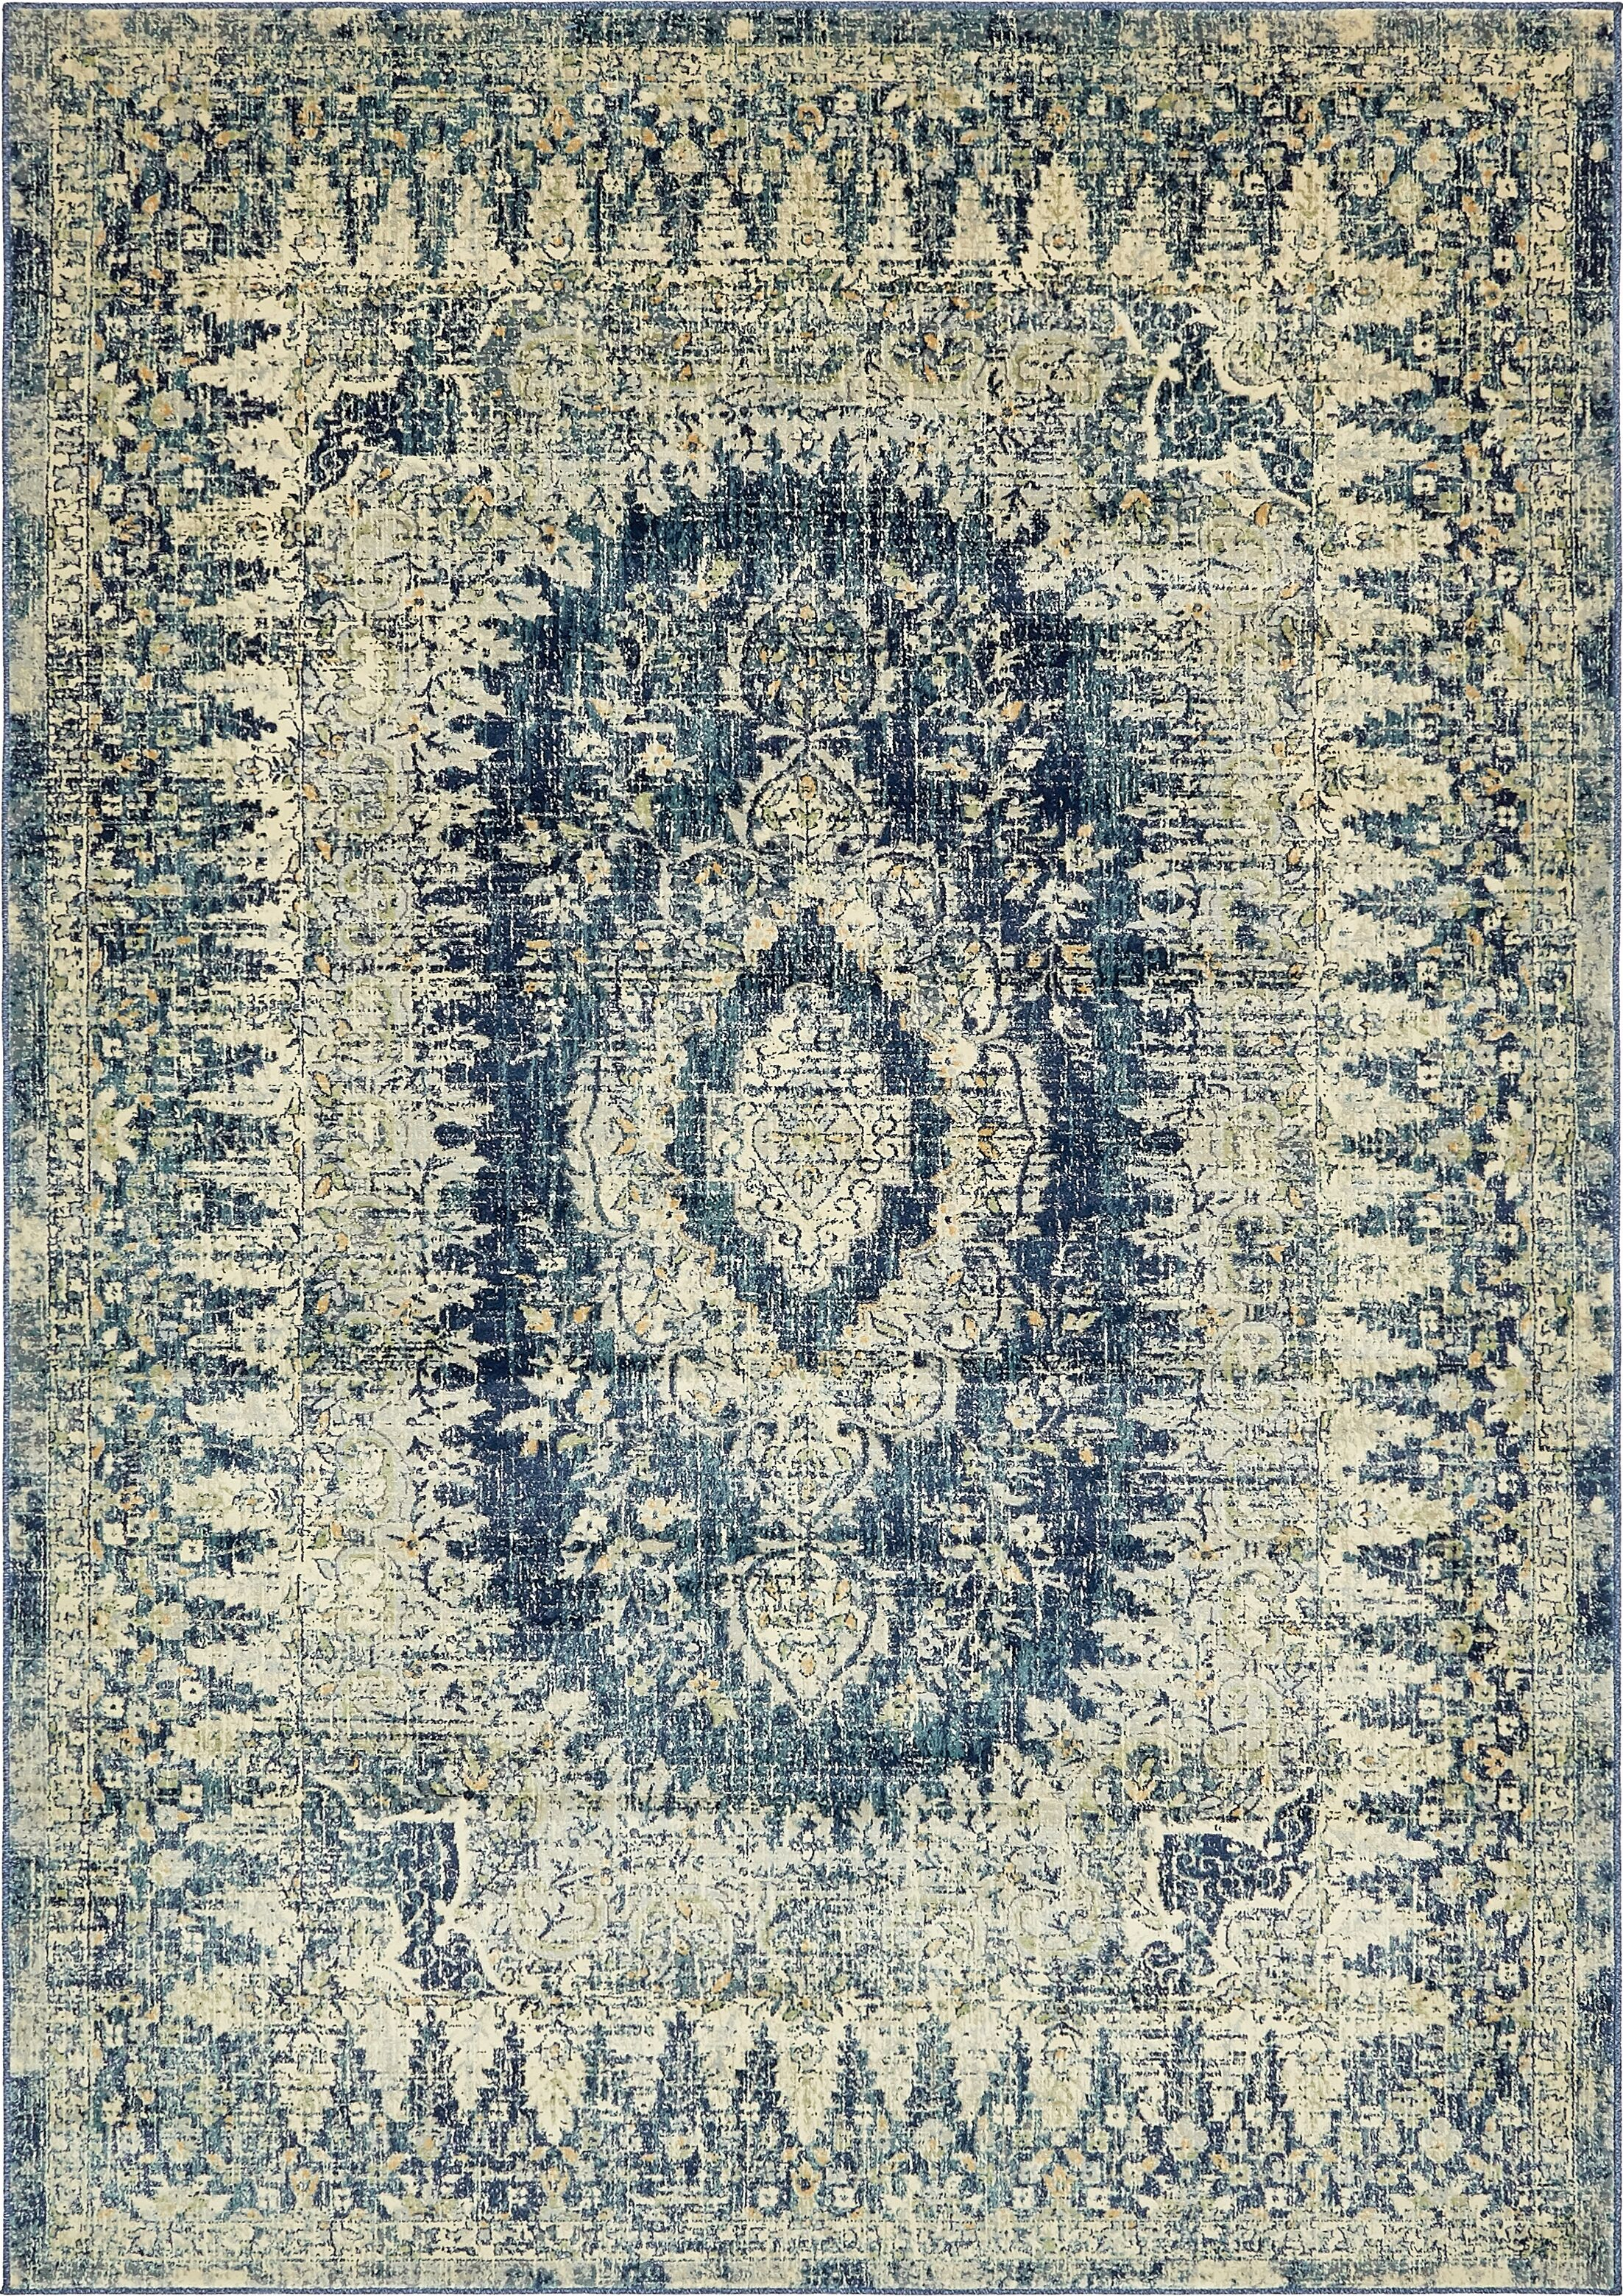 Jae Eclectic Navy Blue Area Rug Rug Size: Rectangle 7' x 10'